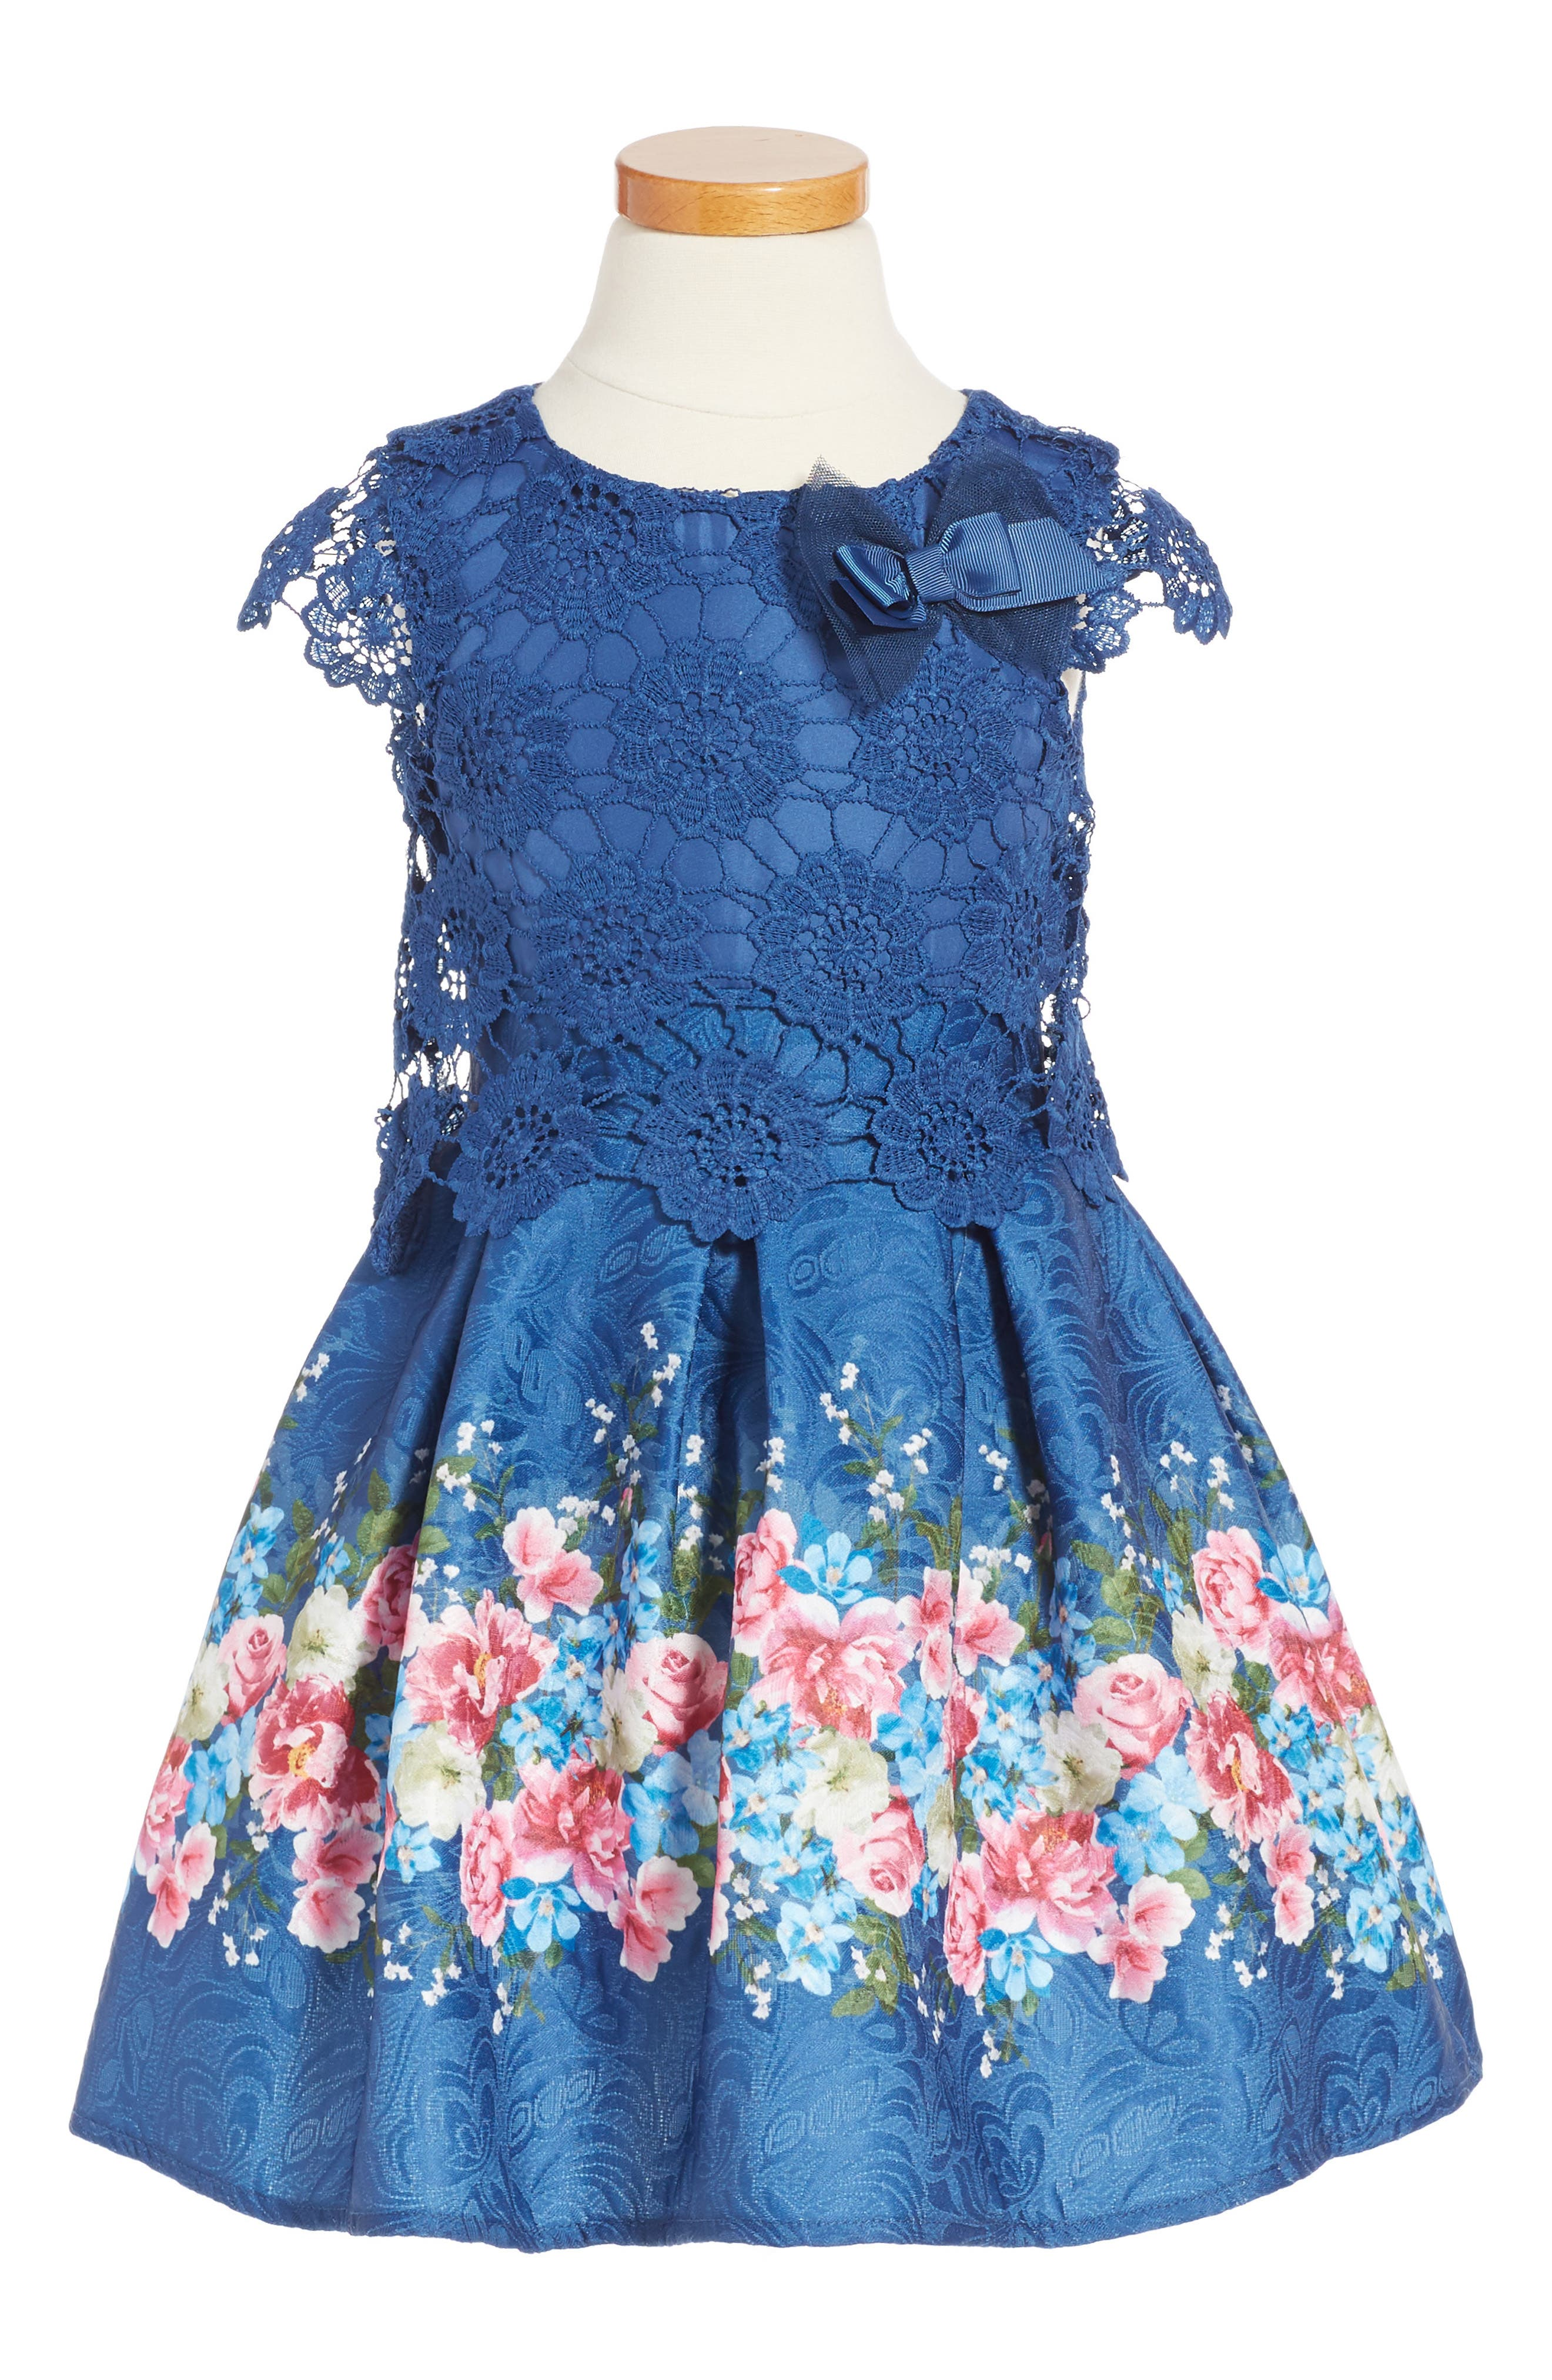 LITTLE ANGELS Lace Popover Bodice Party Dress